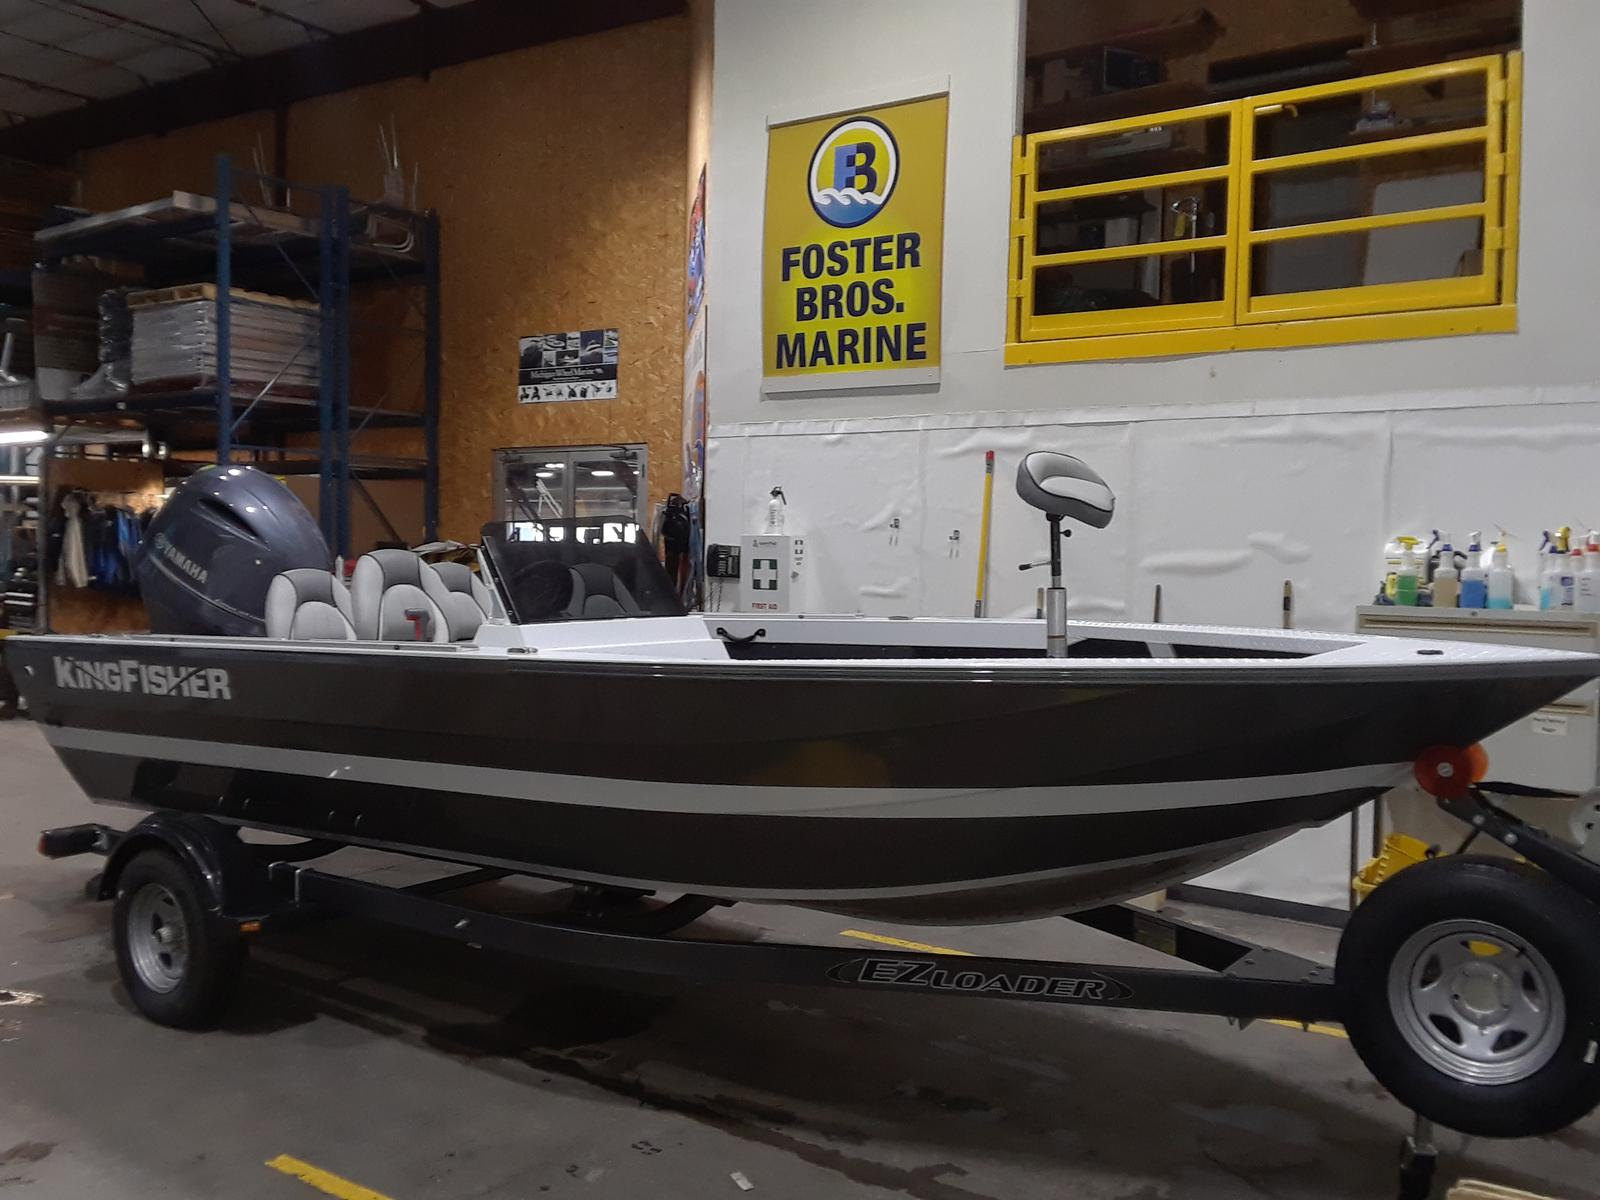 Inventory from Kingfisher Boats, Smoker Craft and Lund